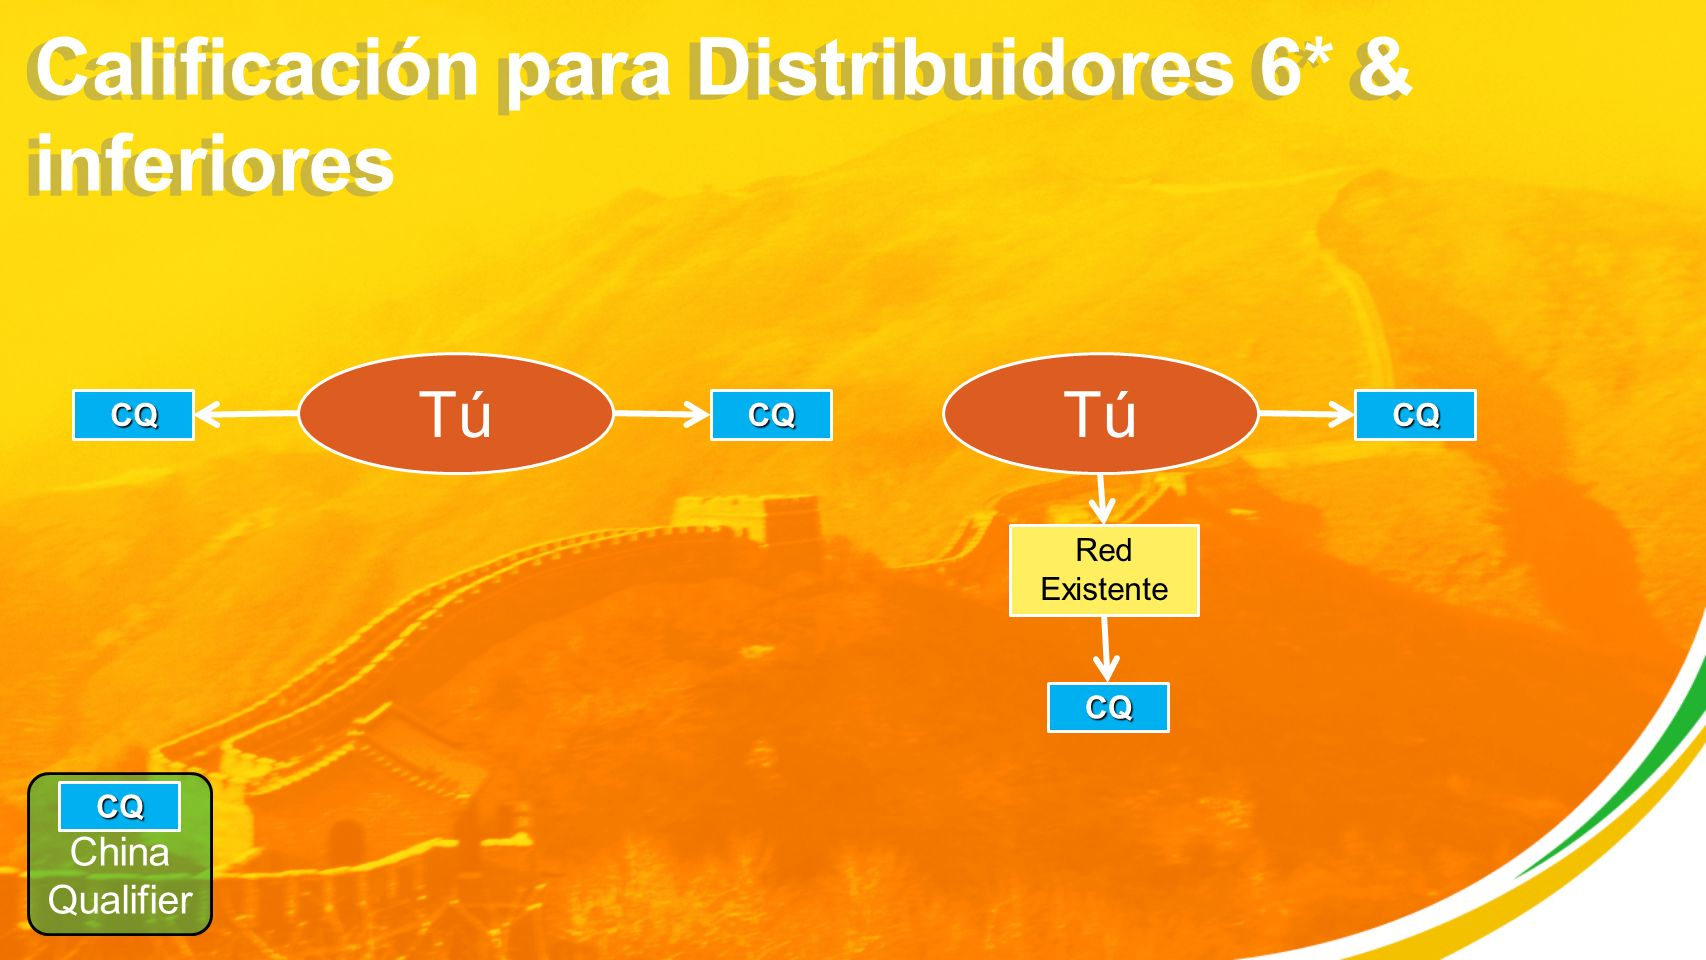 Calificación para Distribuidores 6* & inferiores China Qualifier CQ Tú CQCQ CQ Red Existente CQ